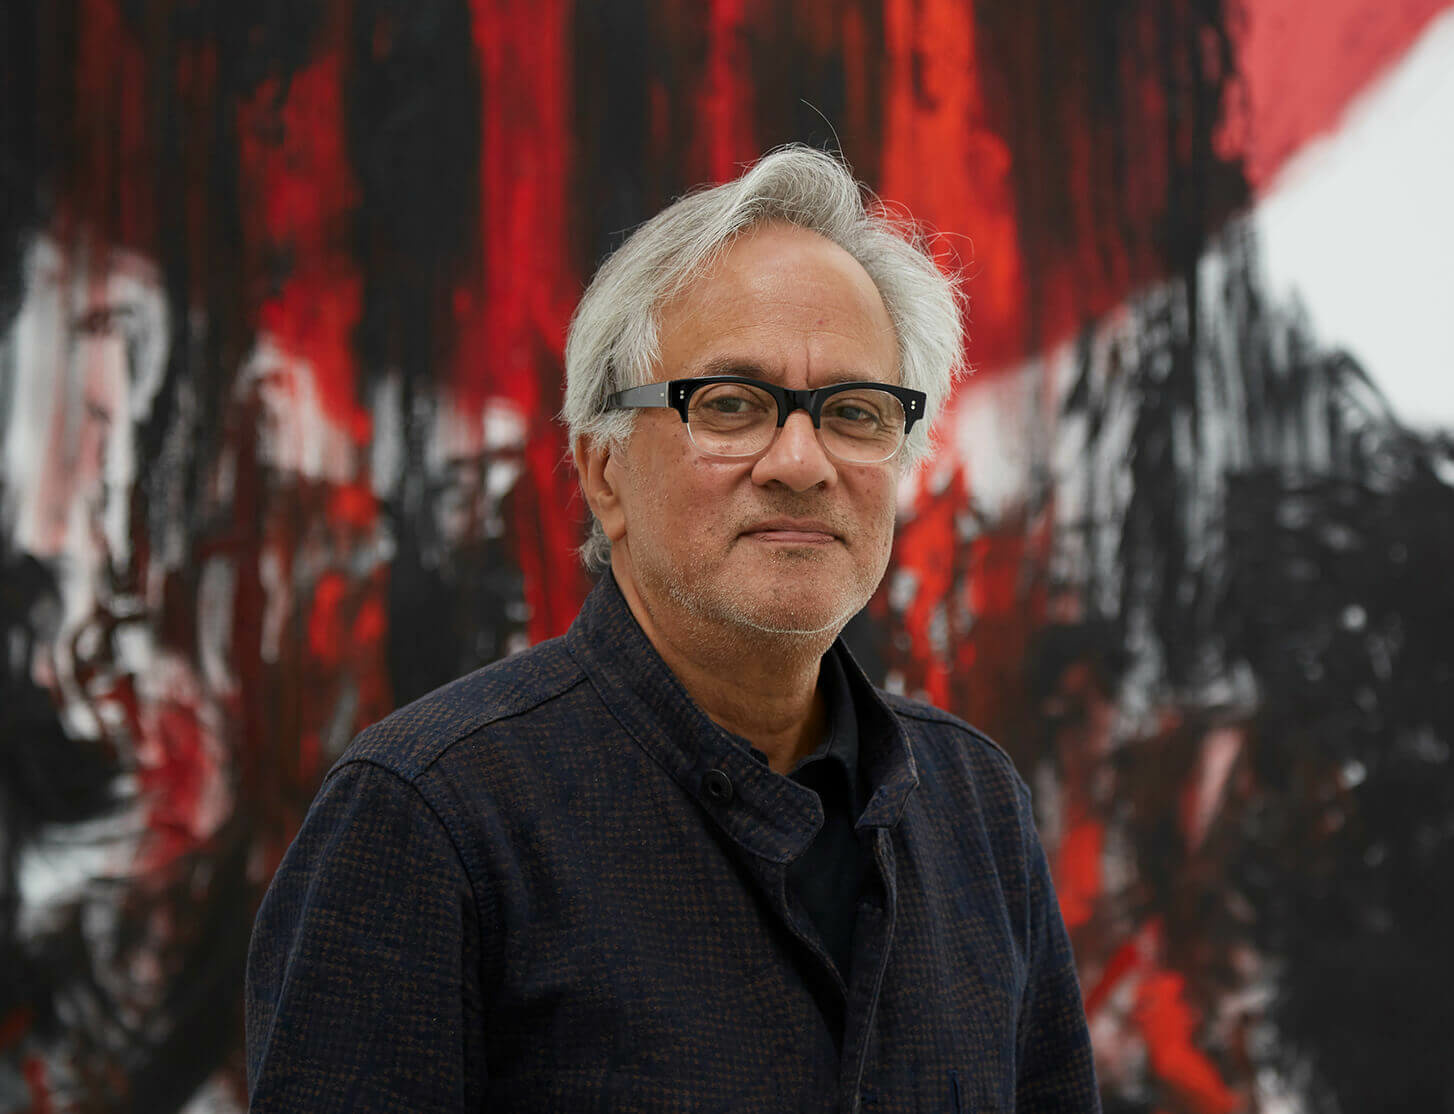 How To Academy hosts 'An Evening With Anish Kapoor'